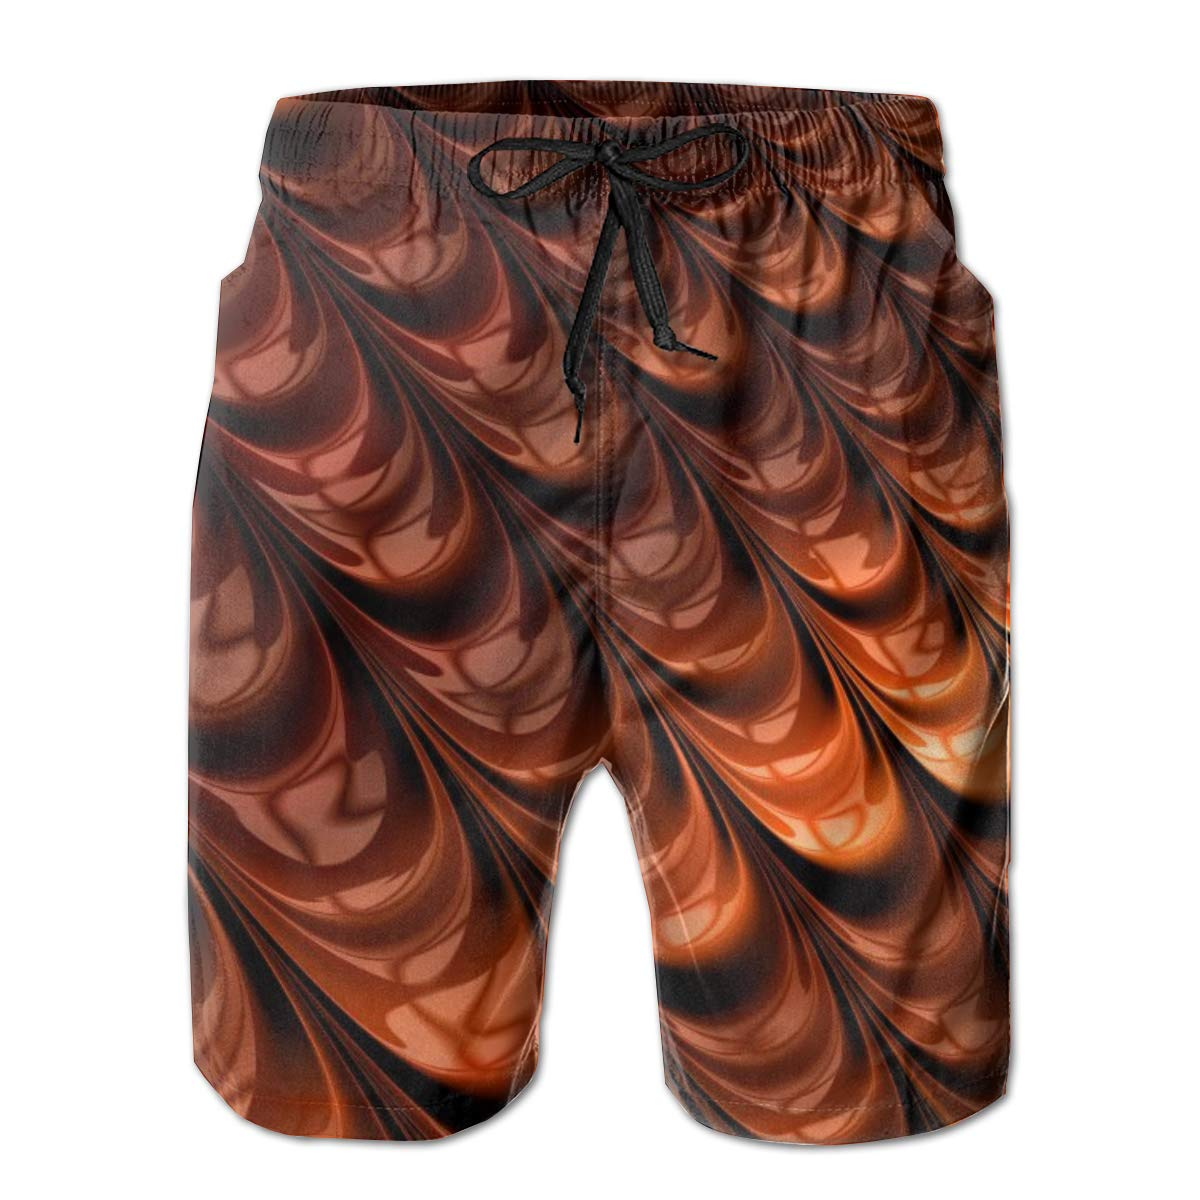 Leisue Brown Patterns Shapes Surface Quick Dry Elastic Lace Boardshorts Beach Shorts Pants Swim Trunks Mens Swimsuit with Pockets